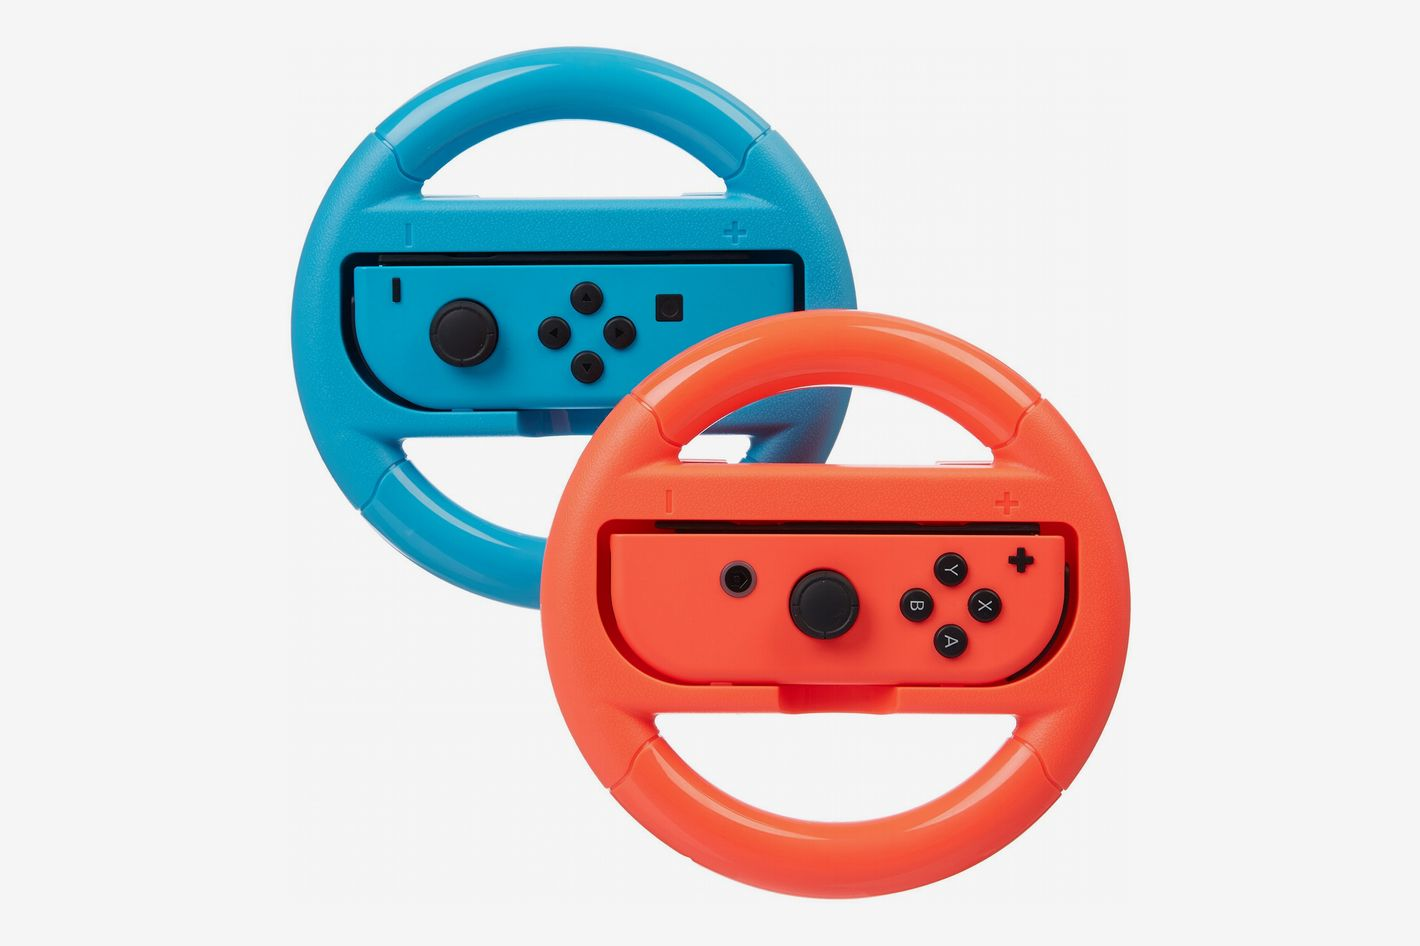 AmazonBasics Steering Wheel for Nintendo Switch